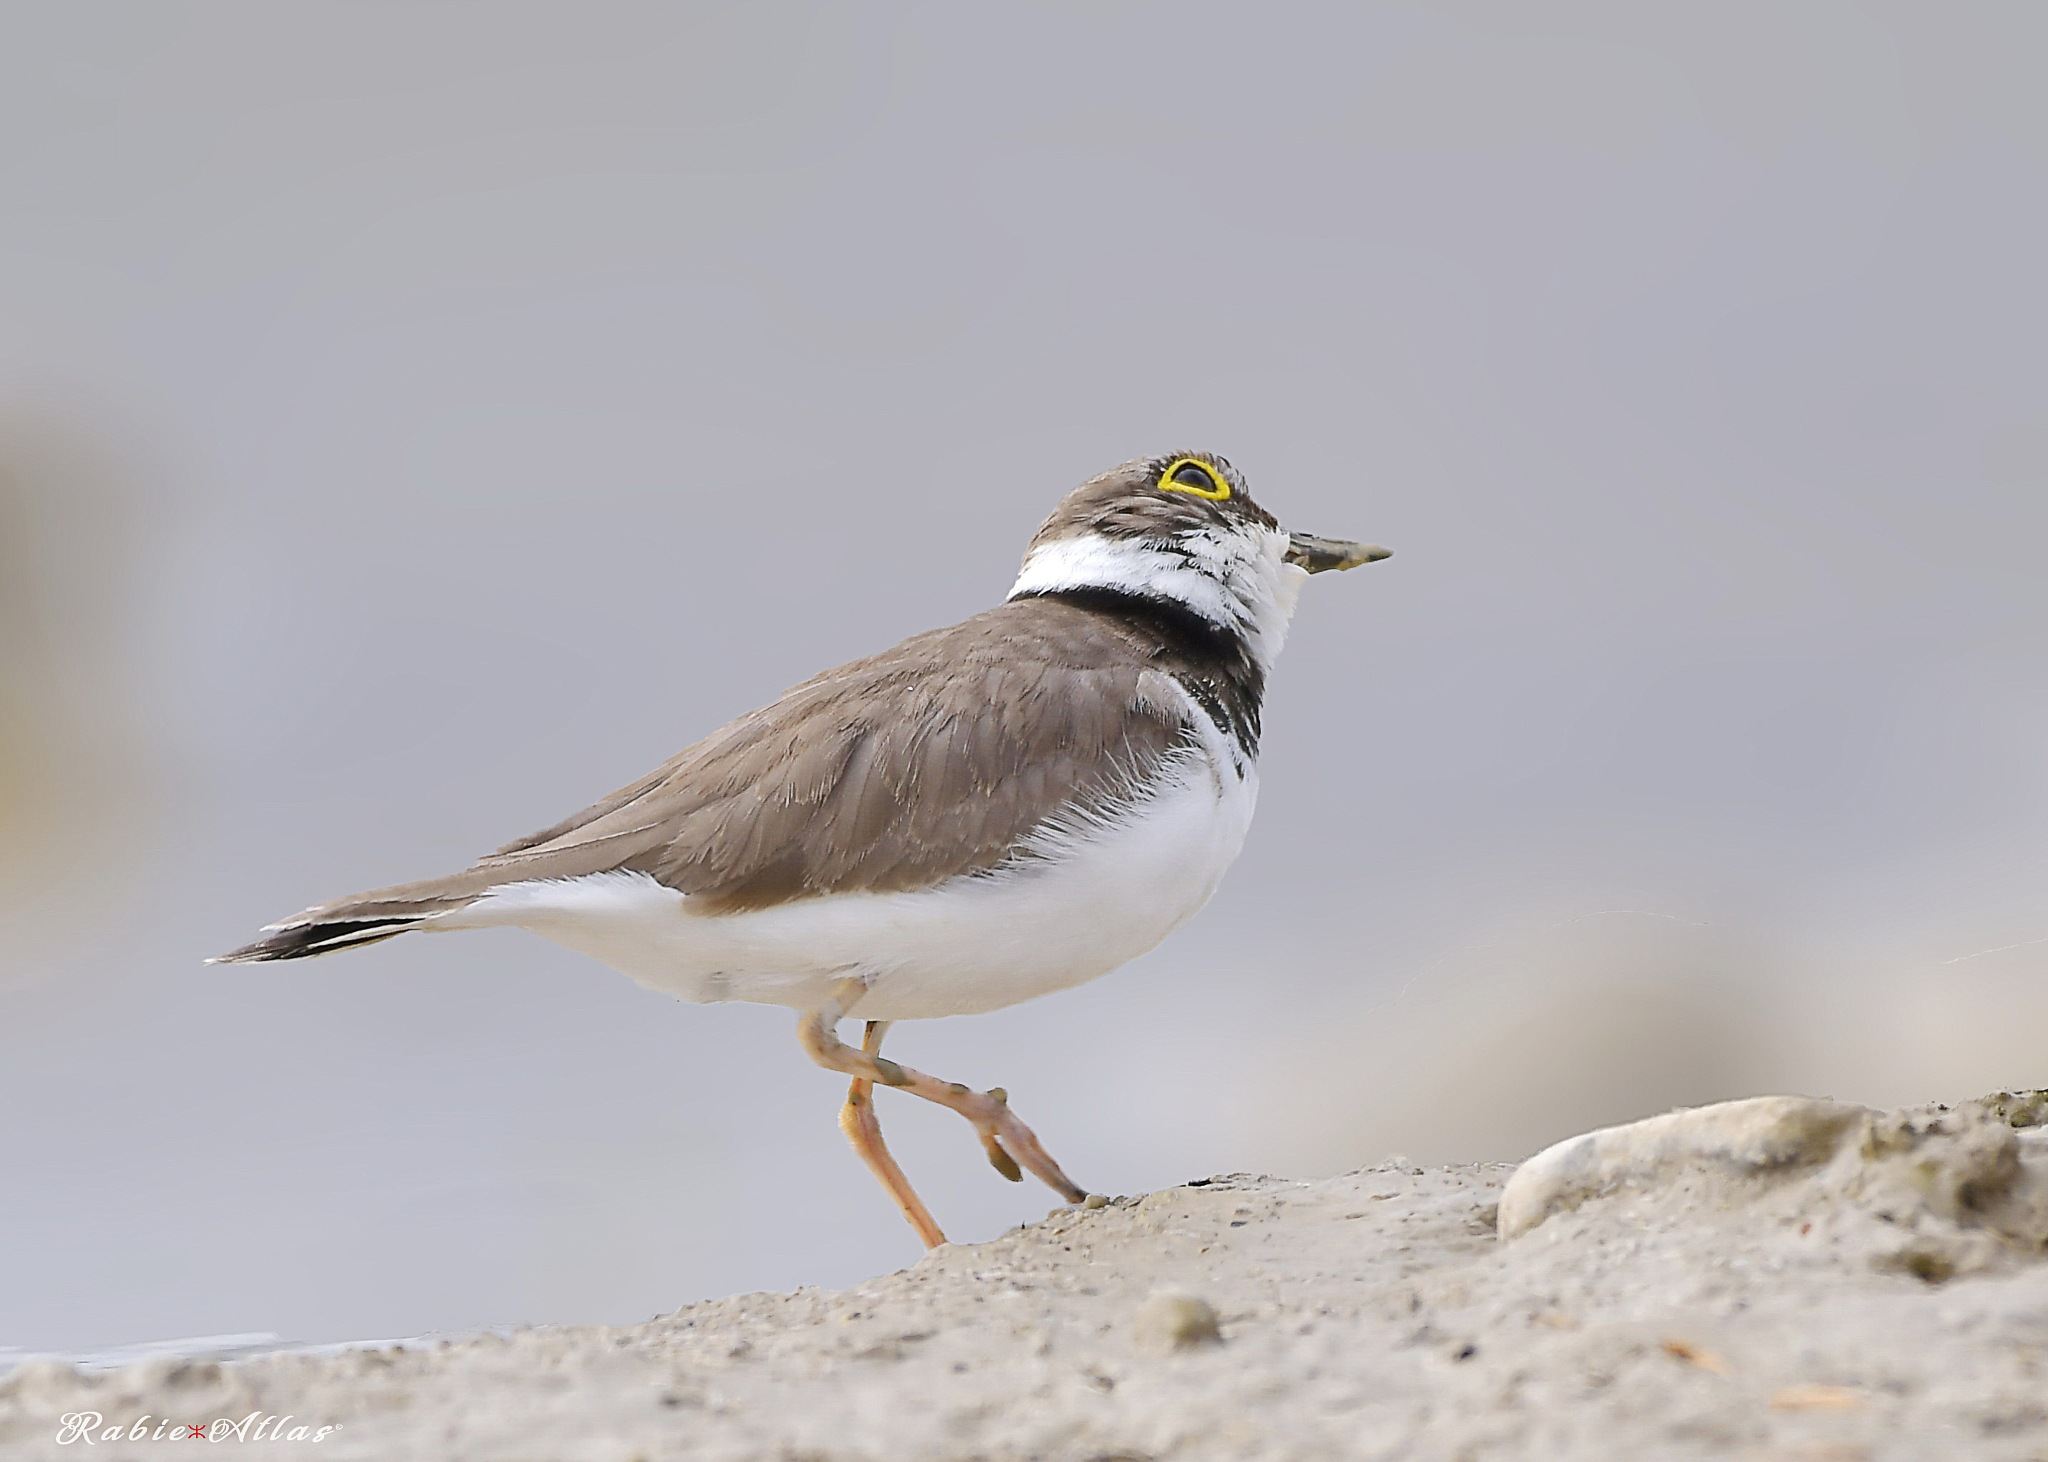 Little ringed plover by Rabie Atlas